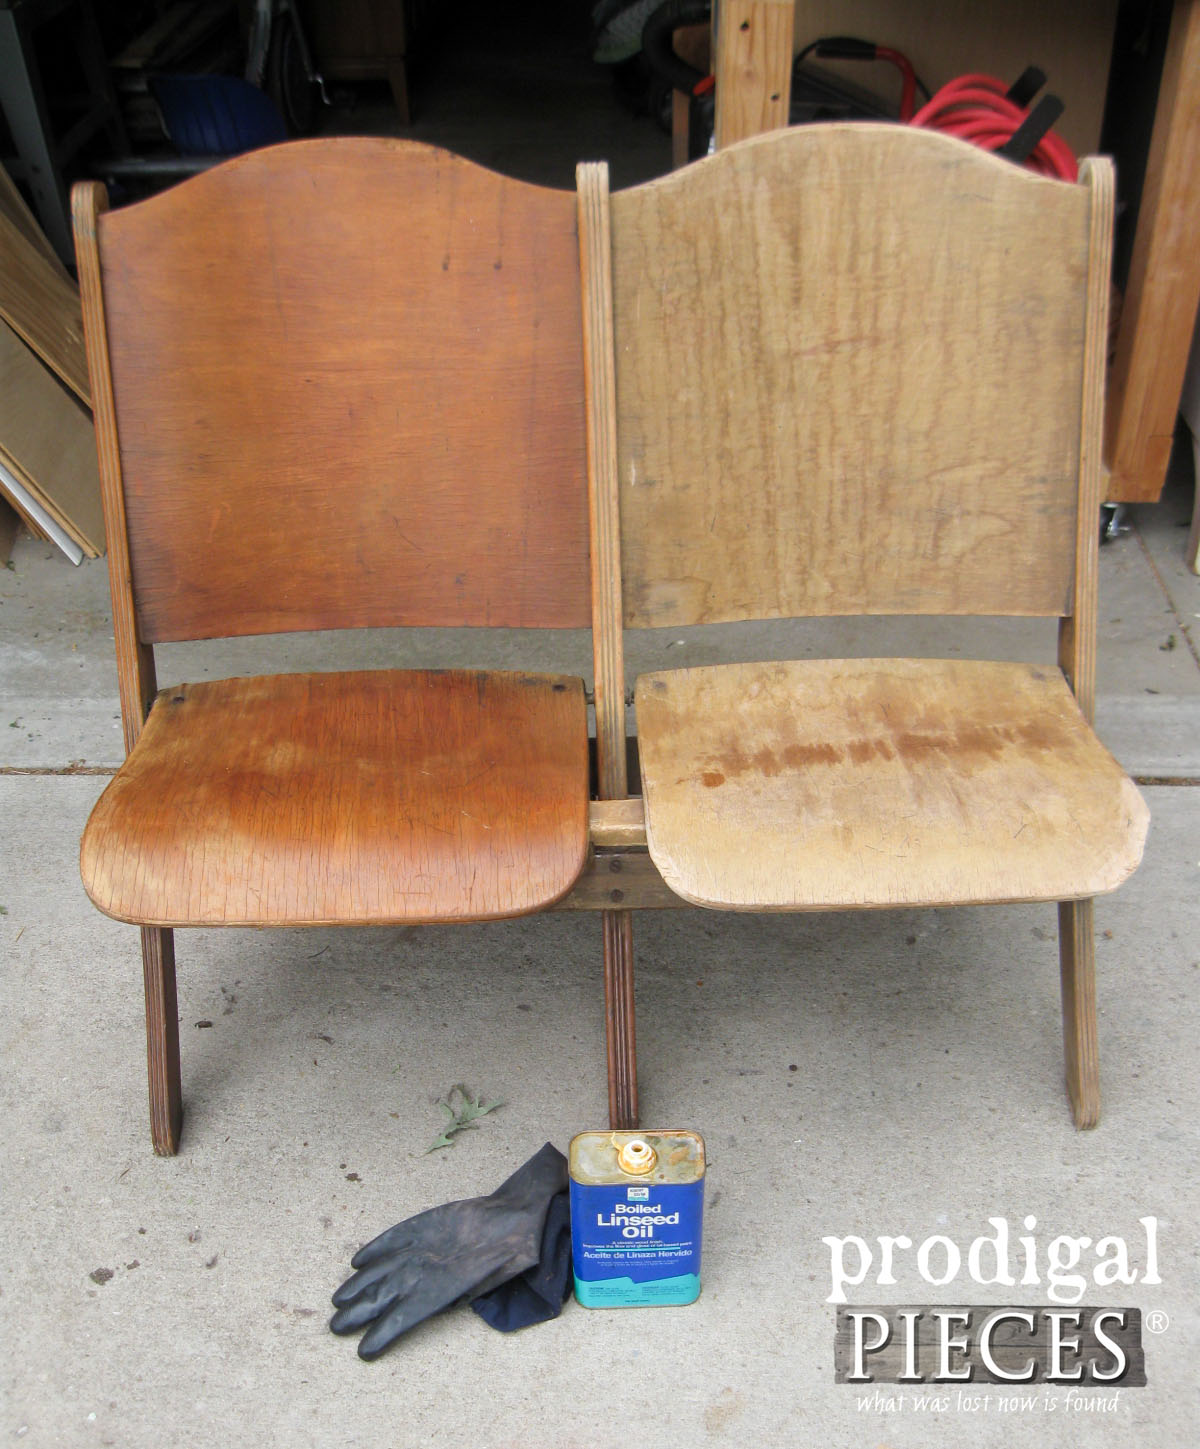 Old Theater Seats Revived with Easy Treatment to Refresh Old Wood | Prodigal Pieces | www.prodigalpieces.com